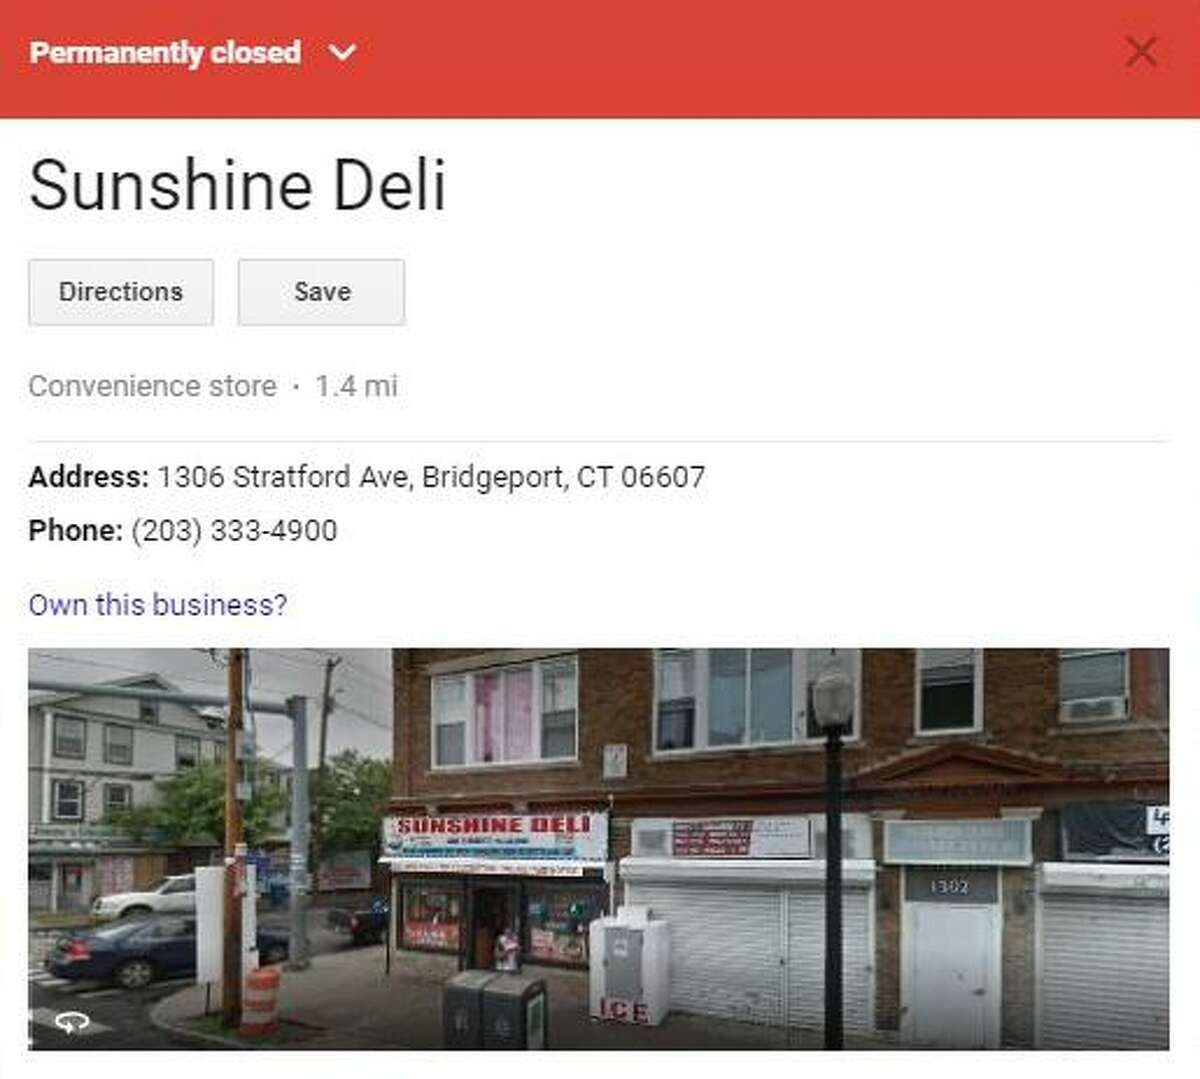 A screenshot of the permanent closure information about Sunshine Deli on Stratford Avenue in Bridgeport, Conn.